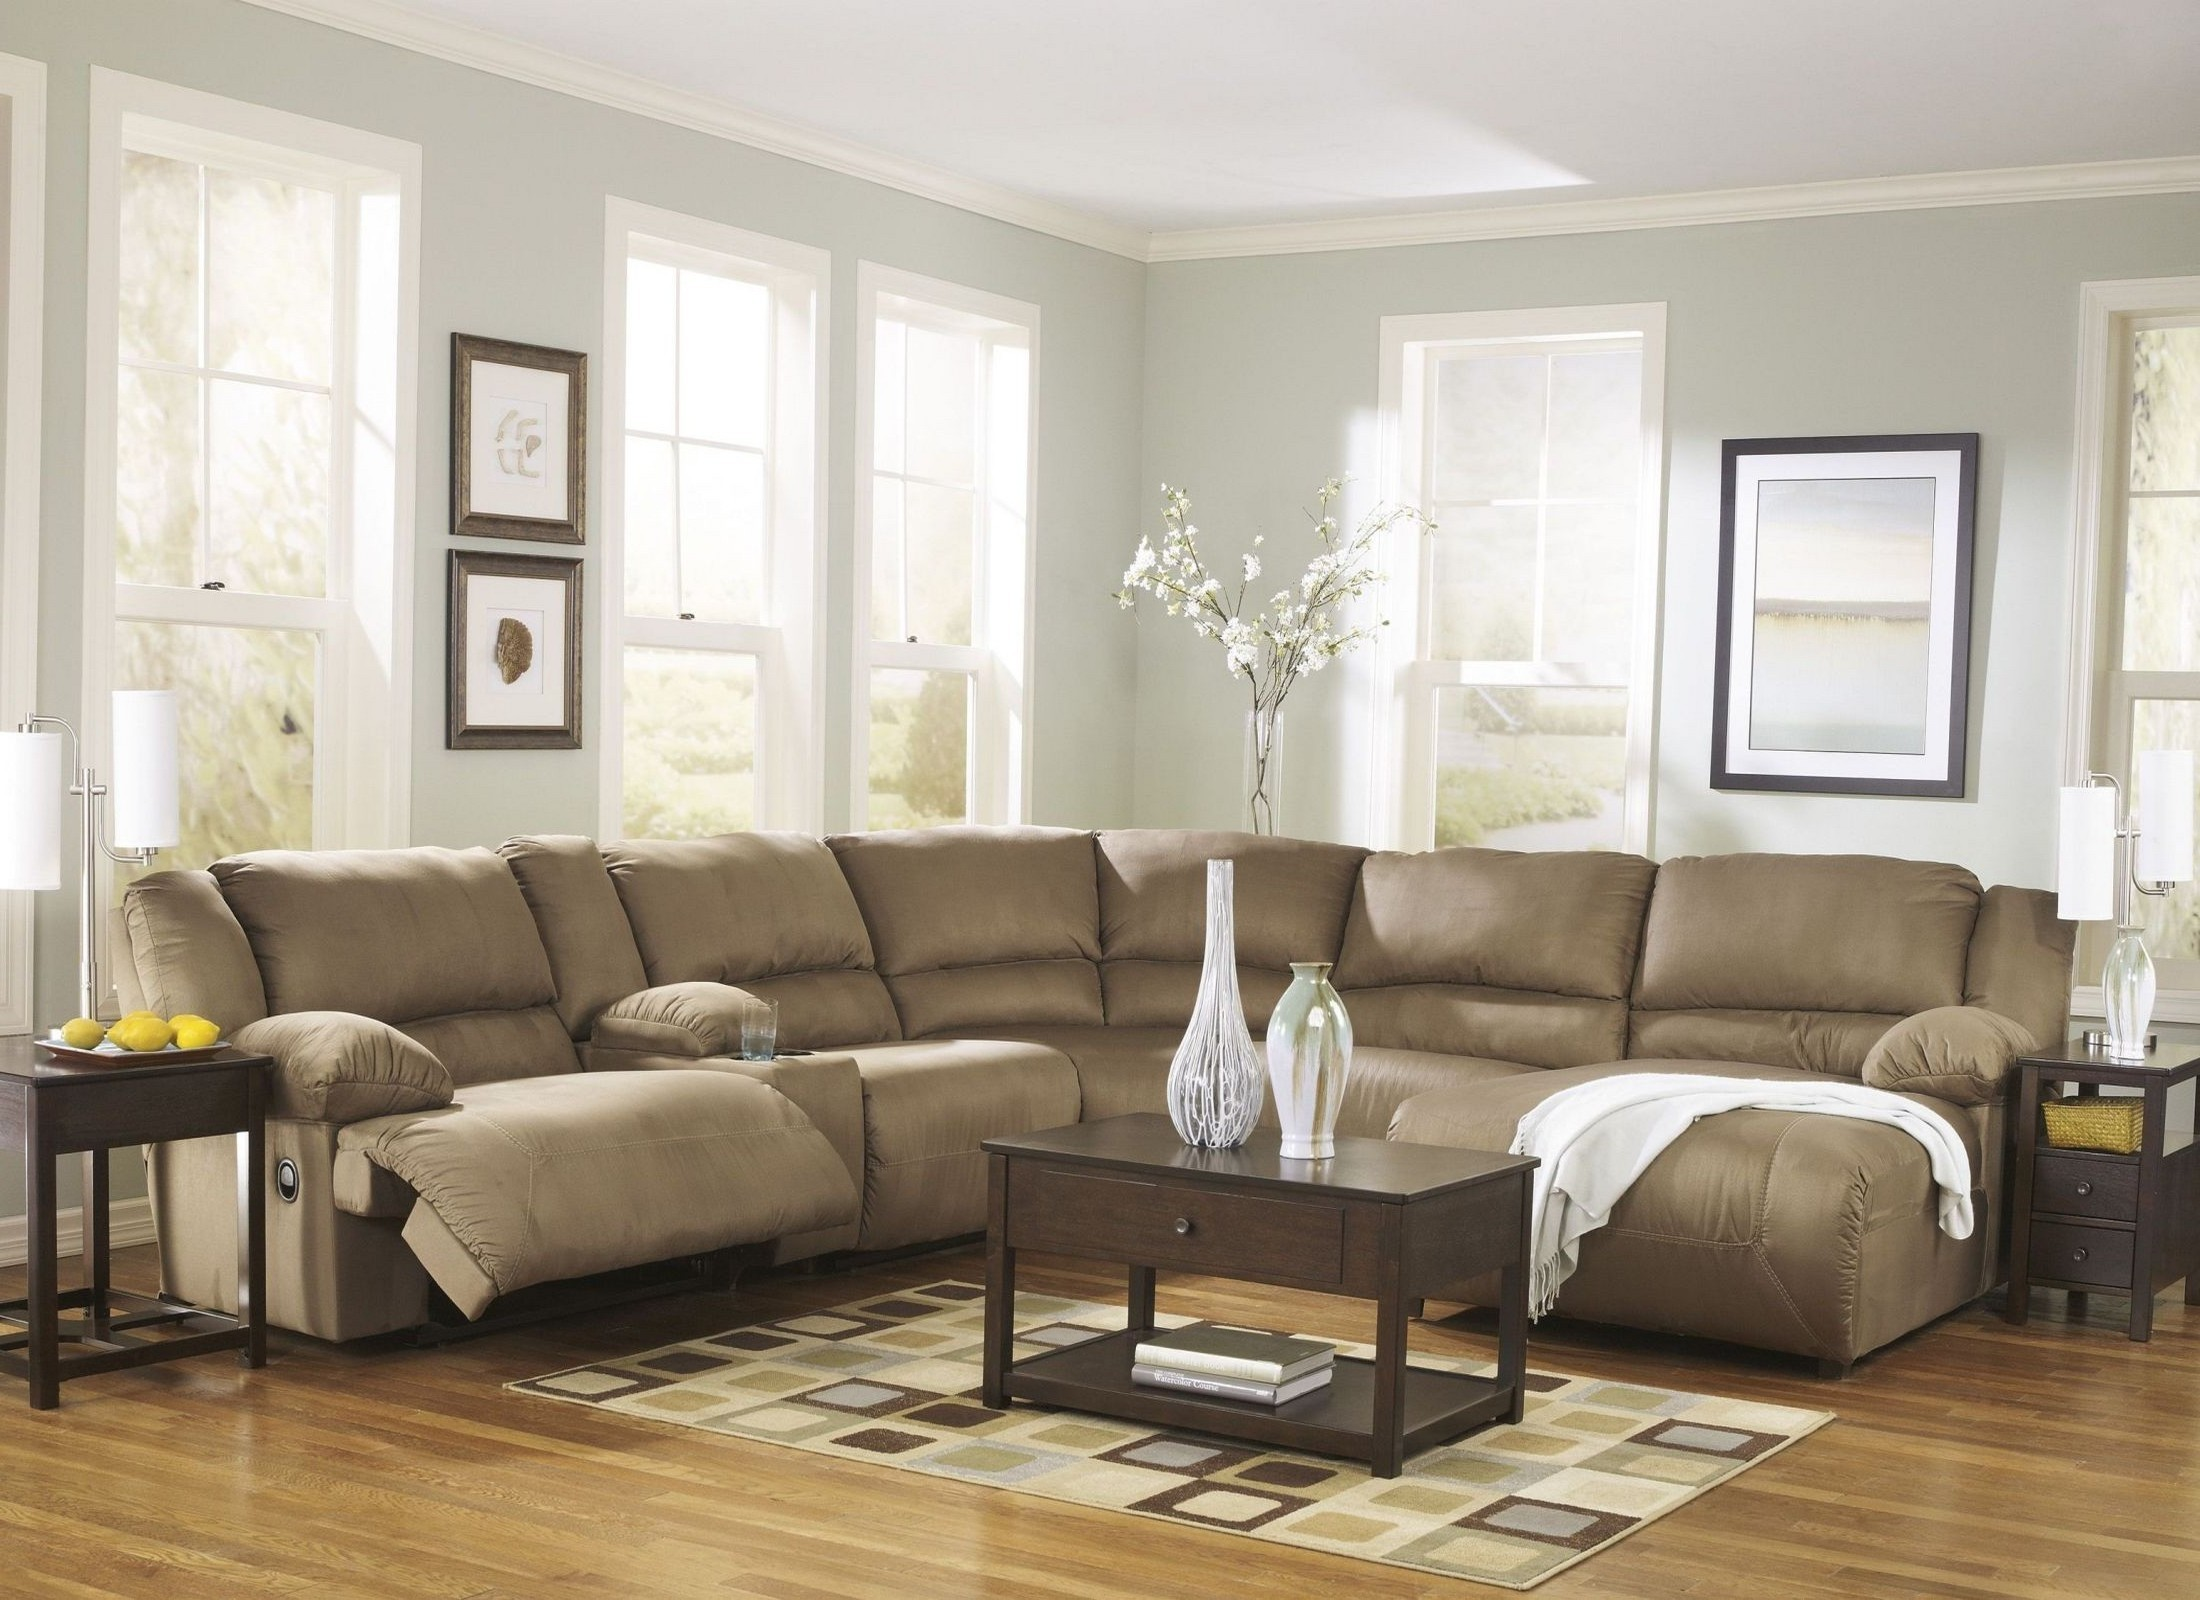 Hogan Mocha Right Chaise Reclining Sectional from Ashley